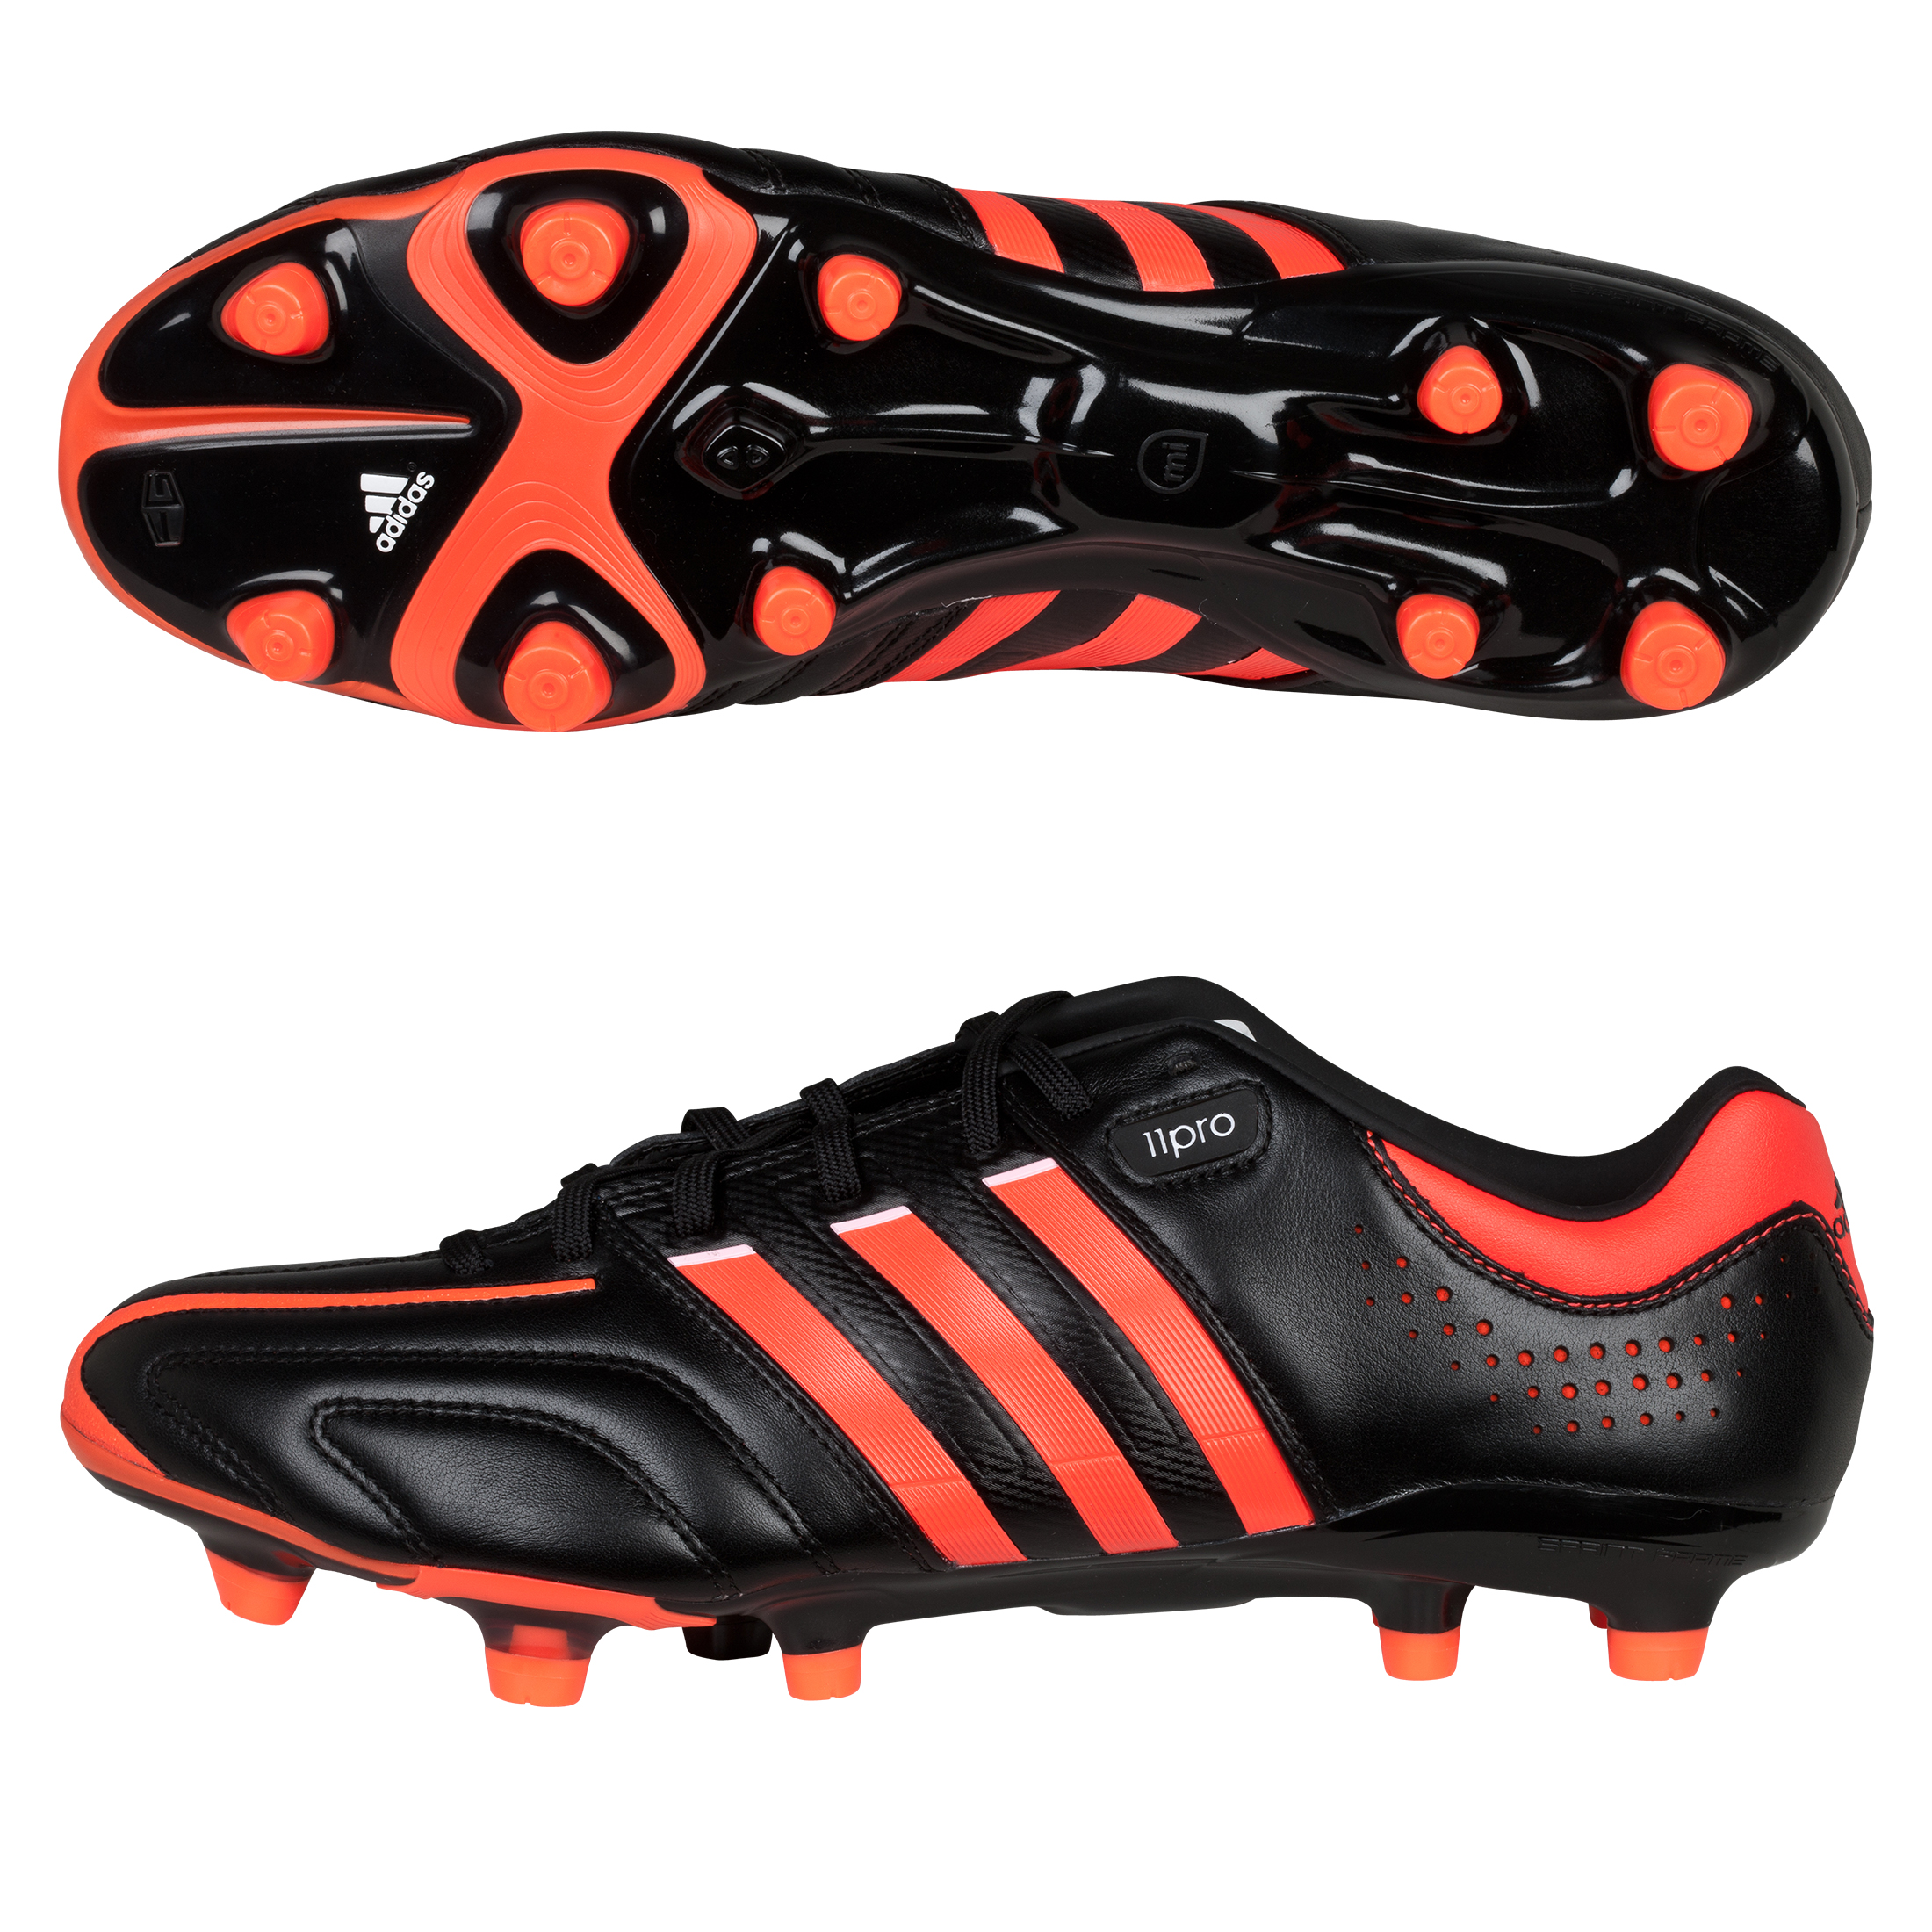 Adipure 11Pro TRX Black/Infrared/White